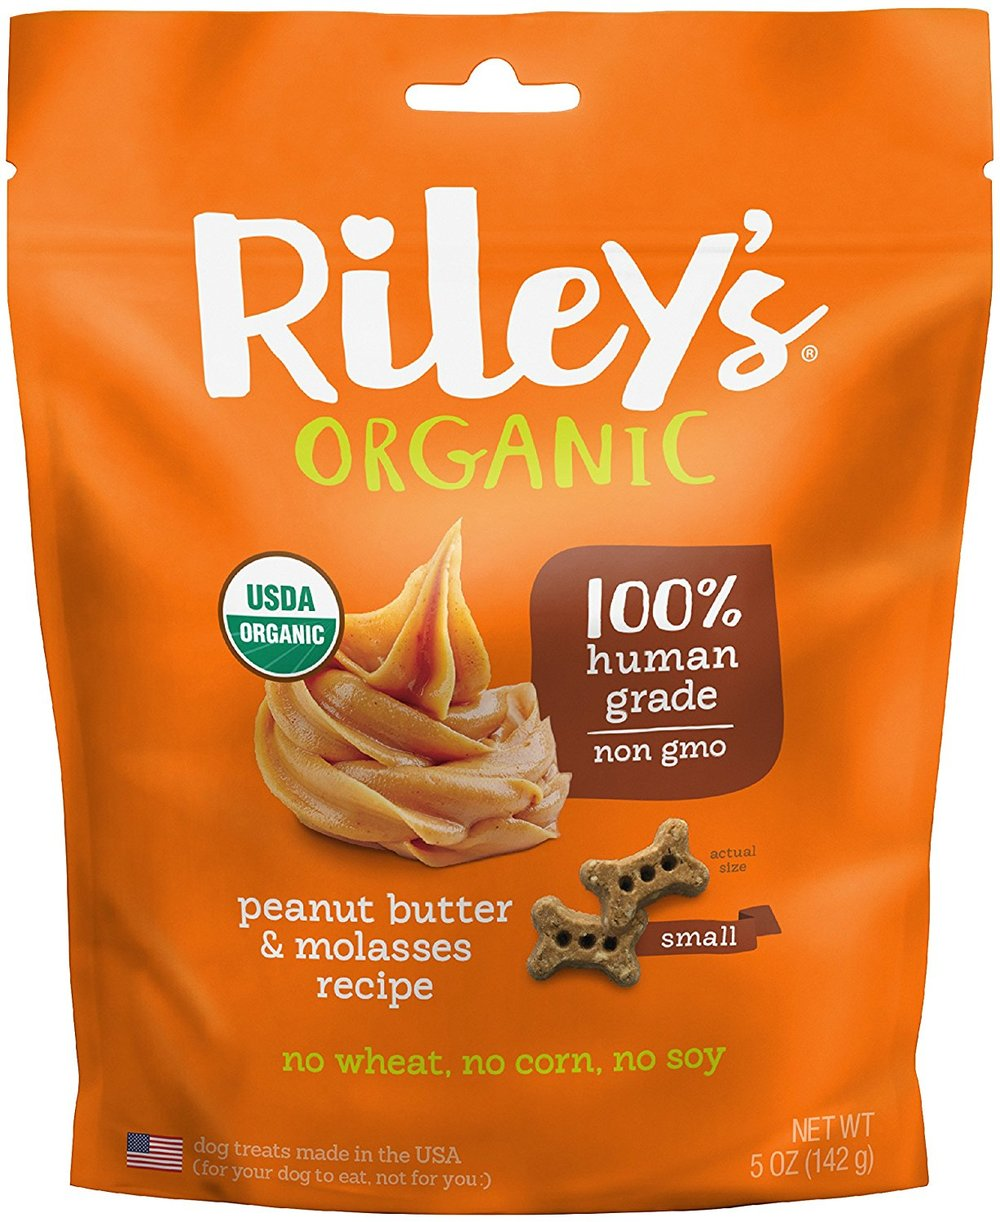 Riley's Organics - Peanut Butter & Molasses - 5 oz Small Biscuits - Human Grade Organic Dog Treats - Resealable Bag.jpg